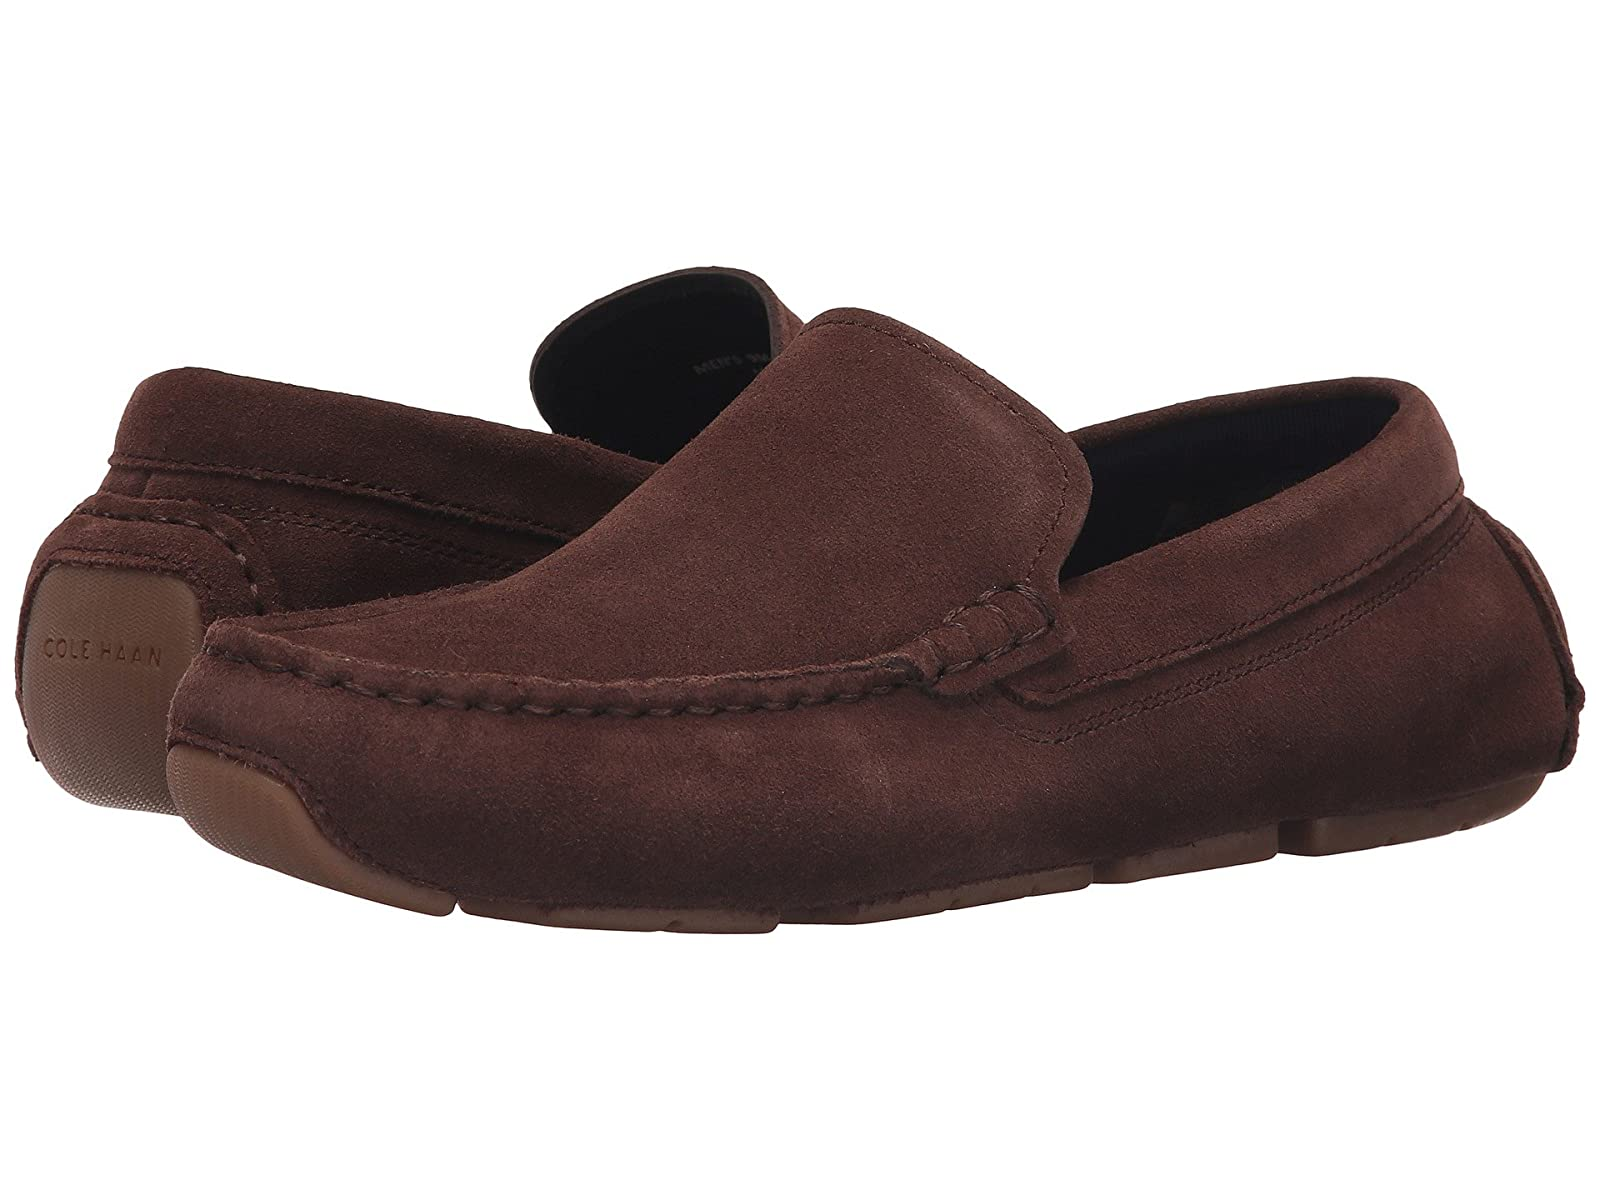 Cole Haan Kelson VenetianCheap and distinctive eye-catching shoes